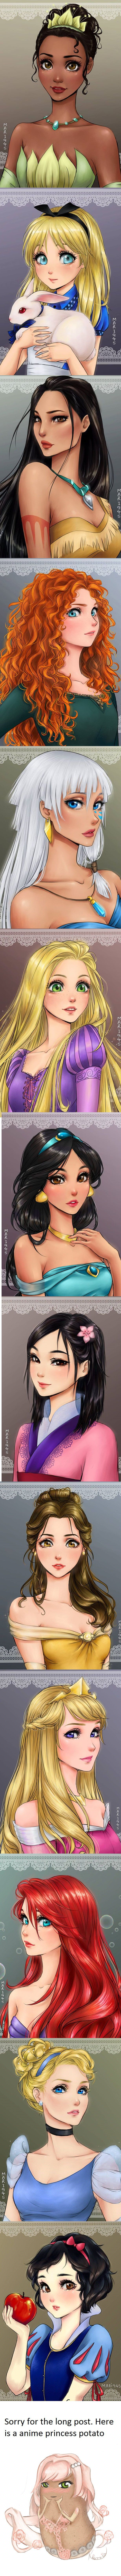 If Disney Princesses were Anime Characters. My fav is Mulan and Jasmine. (by mari945)